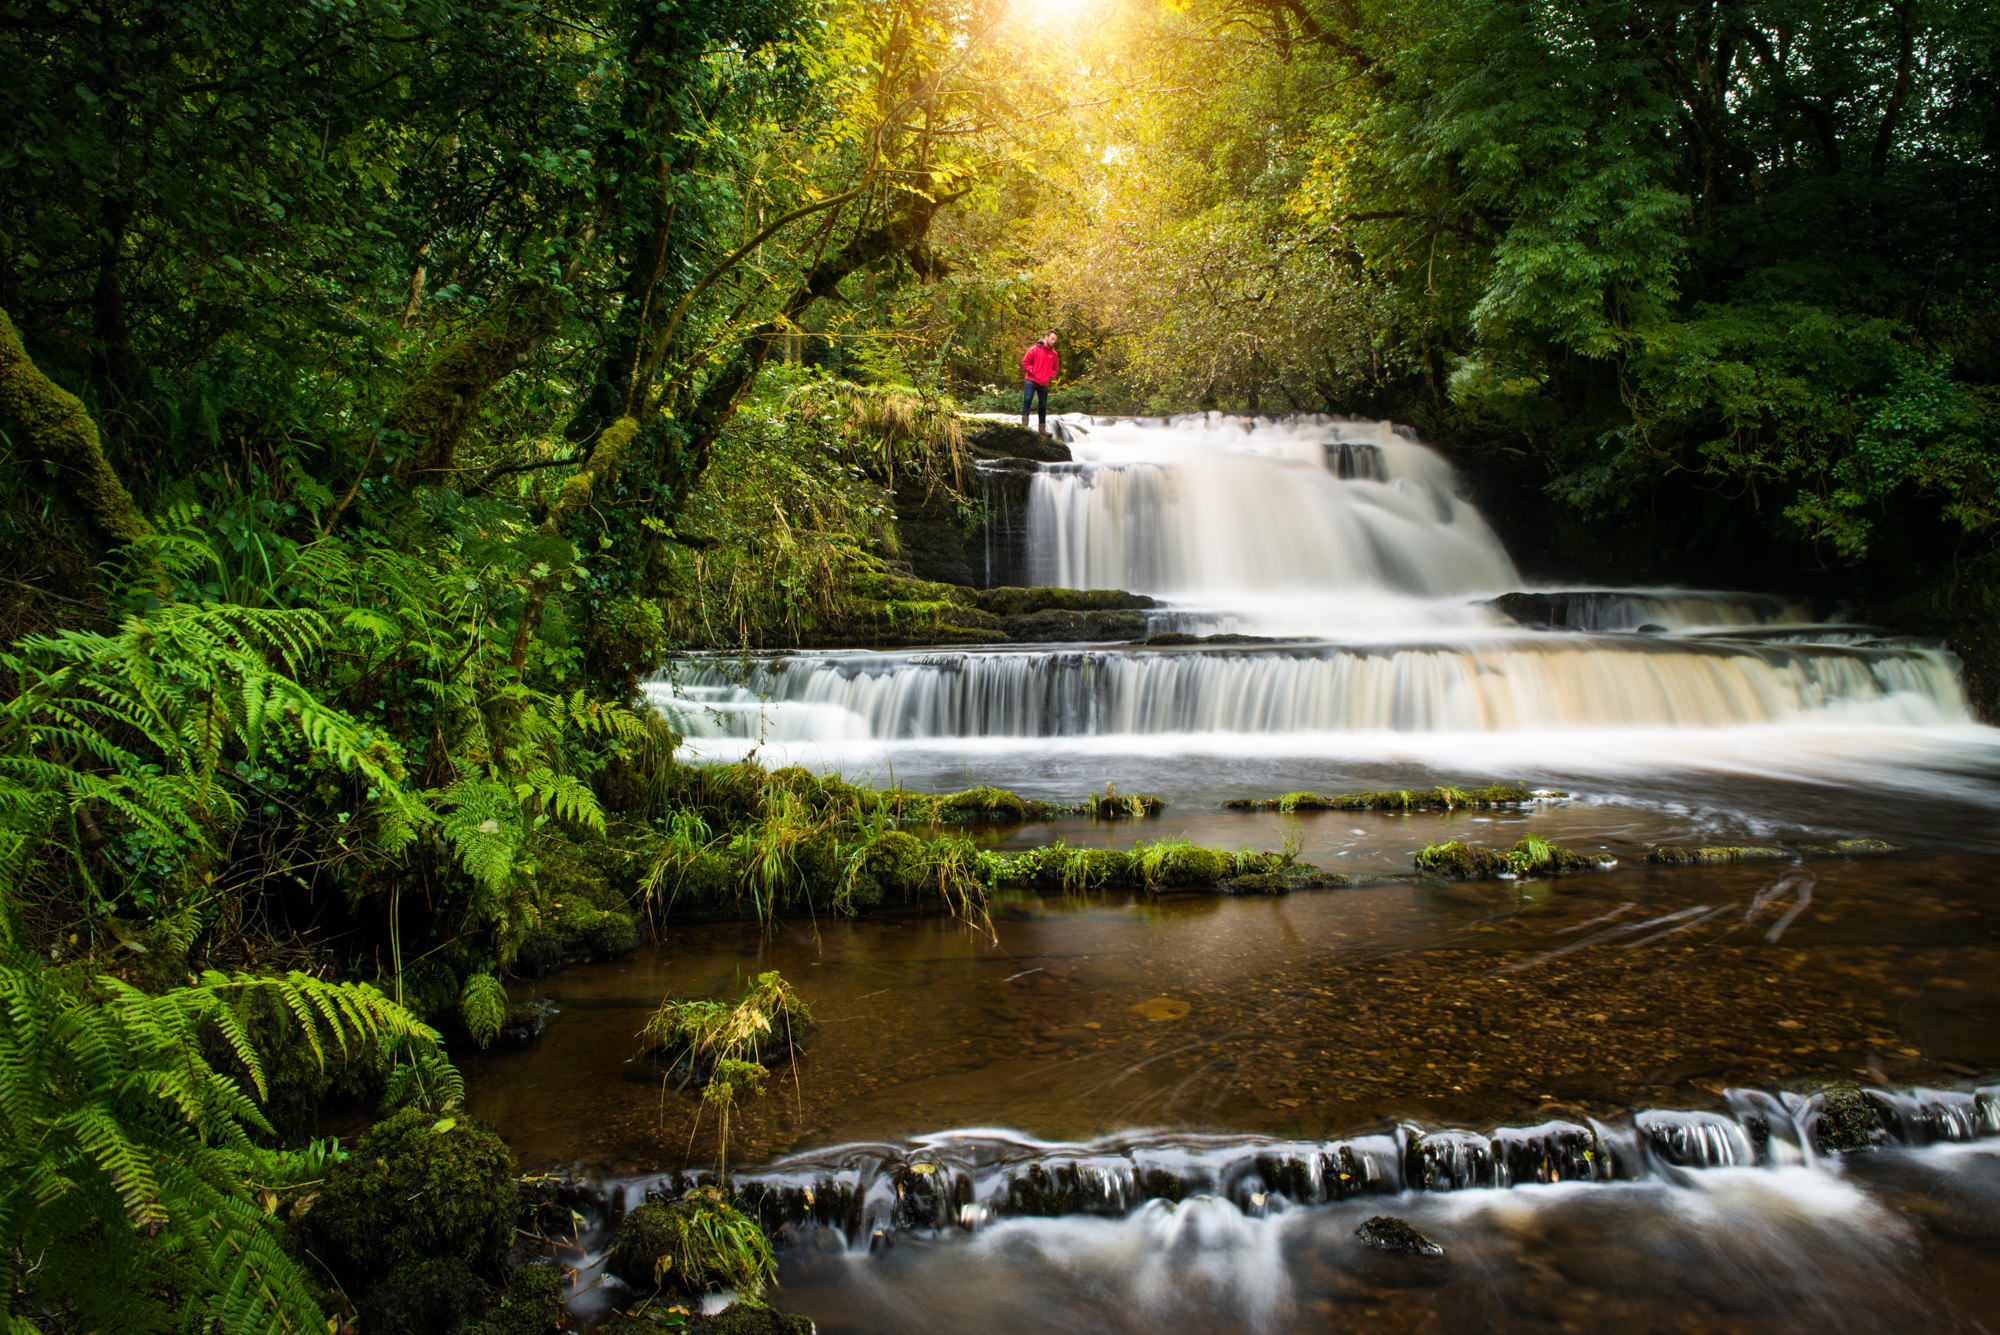 A man standing above Fowley Falls